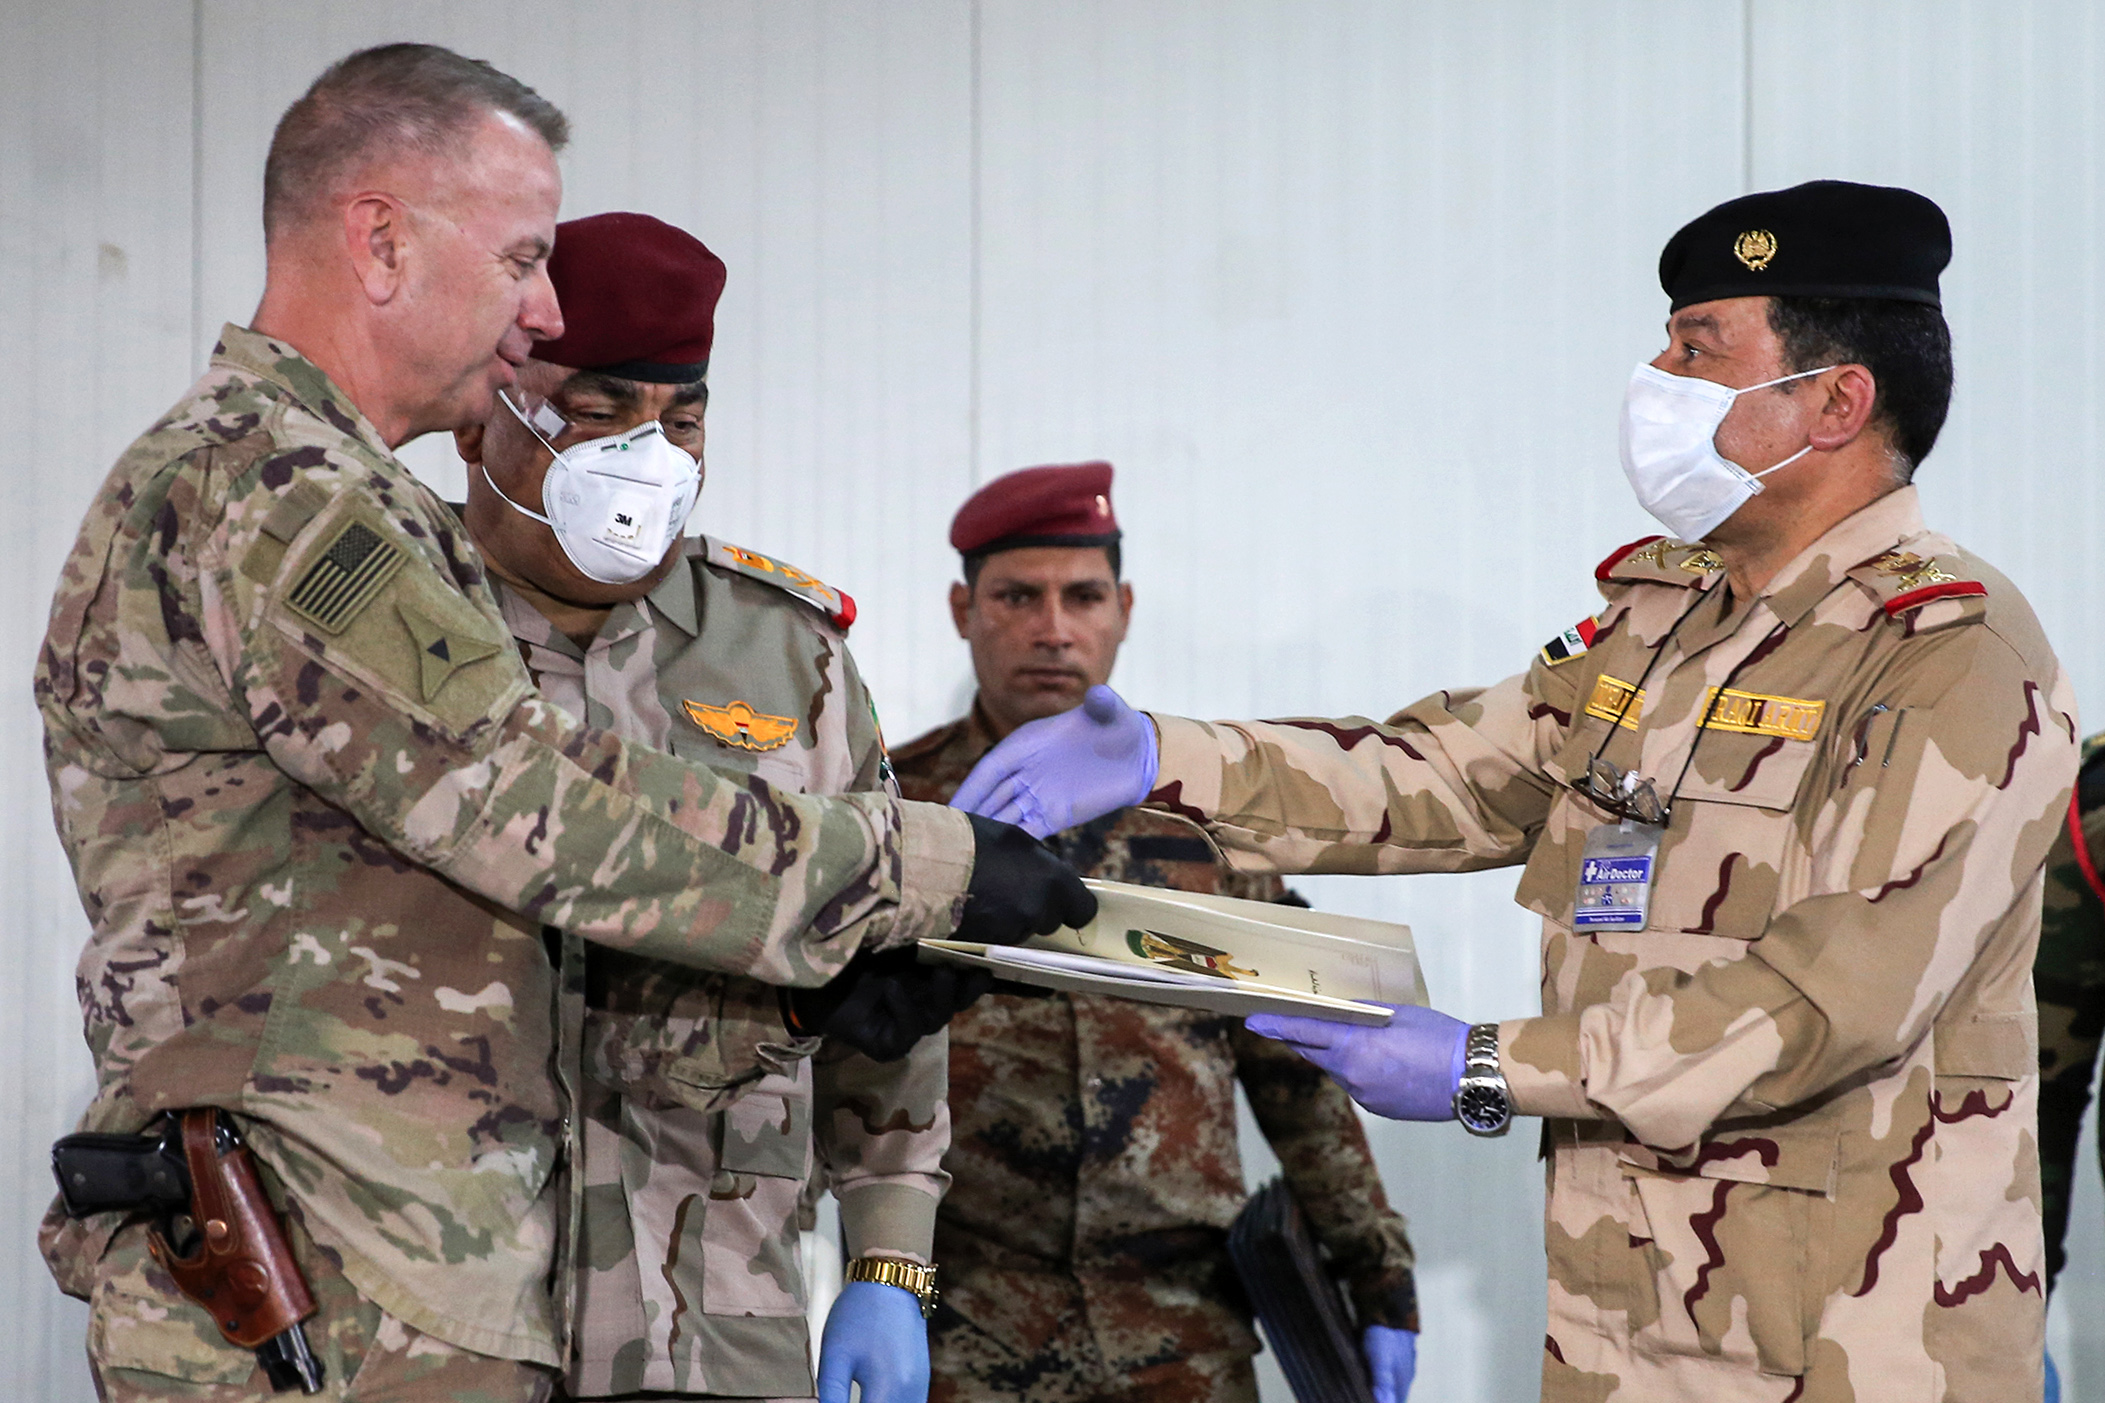 U.S. Army Brig. Gen. Vincent Barker (left) exchanges documents and shakes hands with Iraqi Staff Maj. Gen. Mohammad Fadhel Abbas, both wearing protective gear as a safety measure during the coronavirus pandemic, during a handover ceremony at the K1 air base in northern Iraq on March 29.